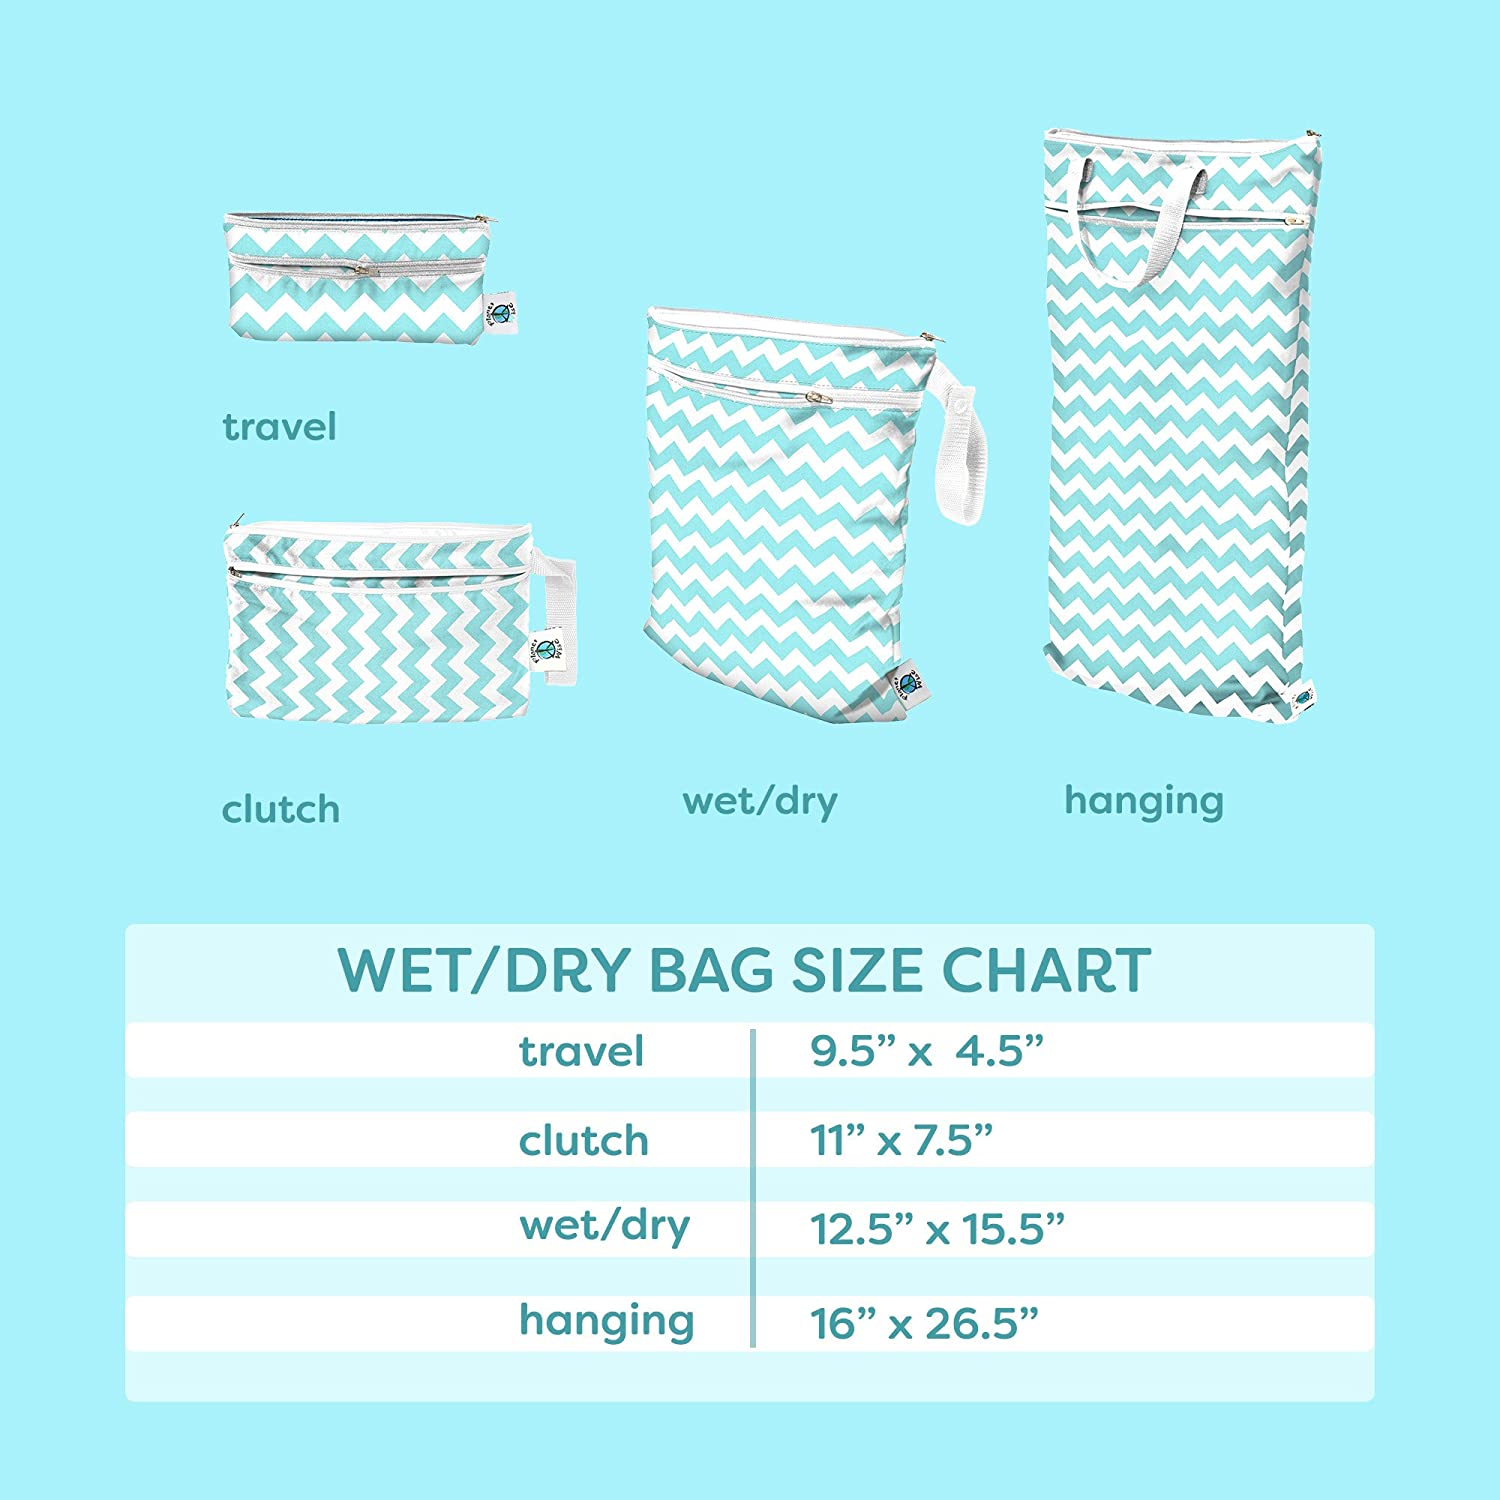 Celestial Sea Planet Wise Hanging Wet//Dry Bag